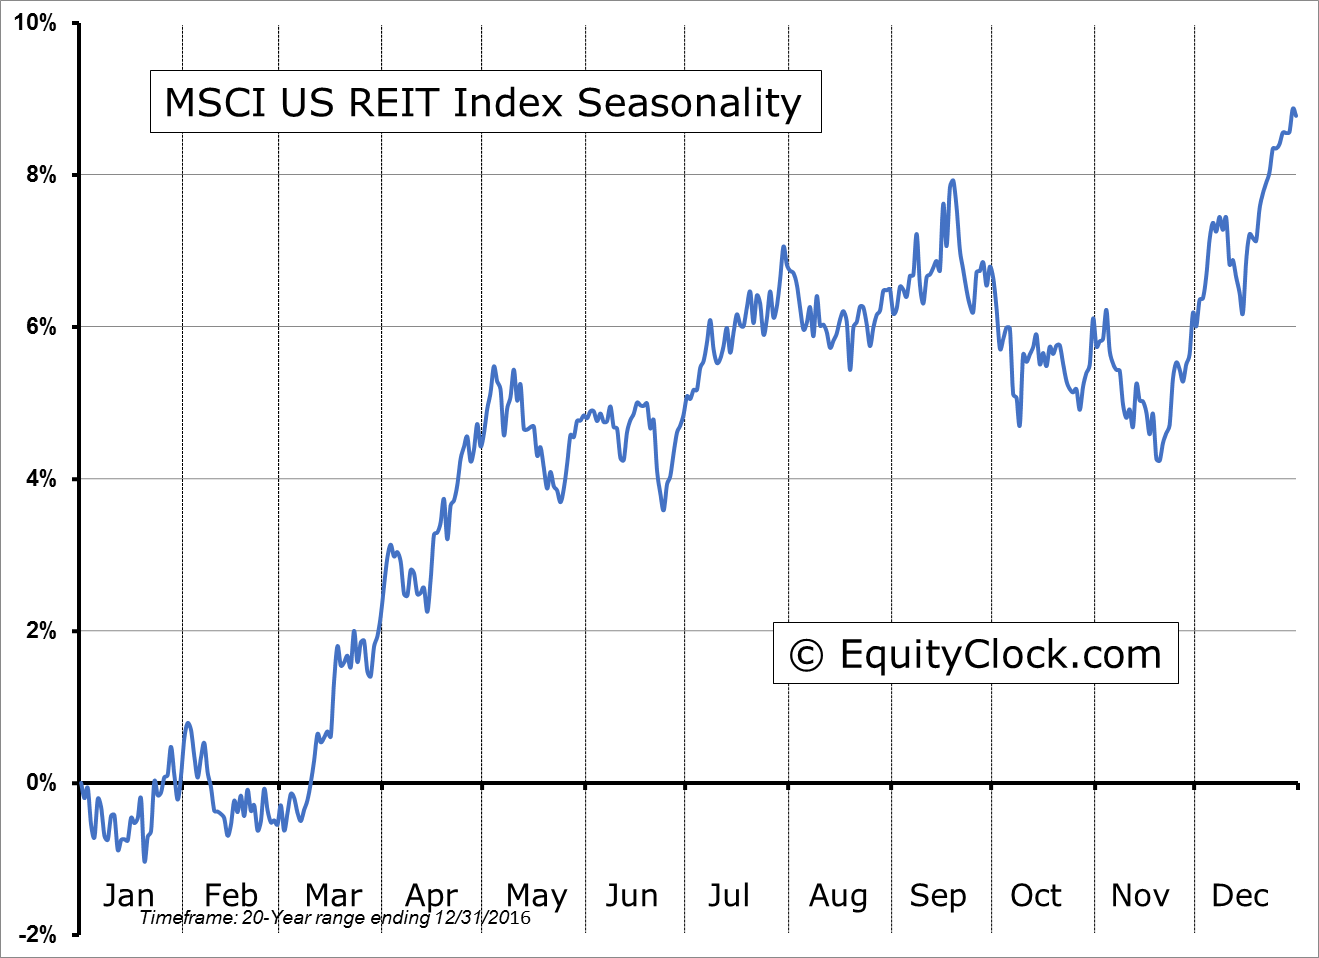 MSCI US REIT Index Seasonality